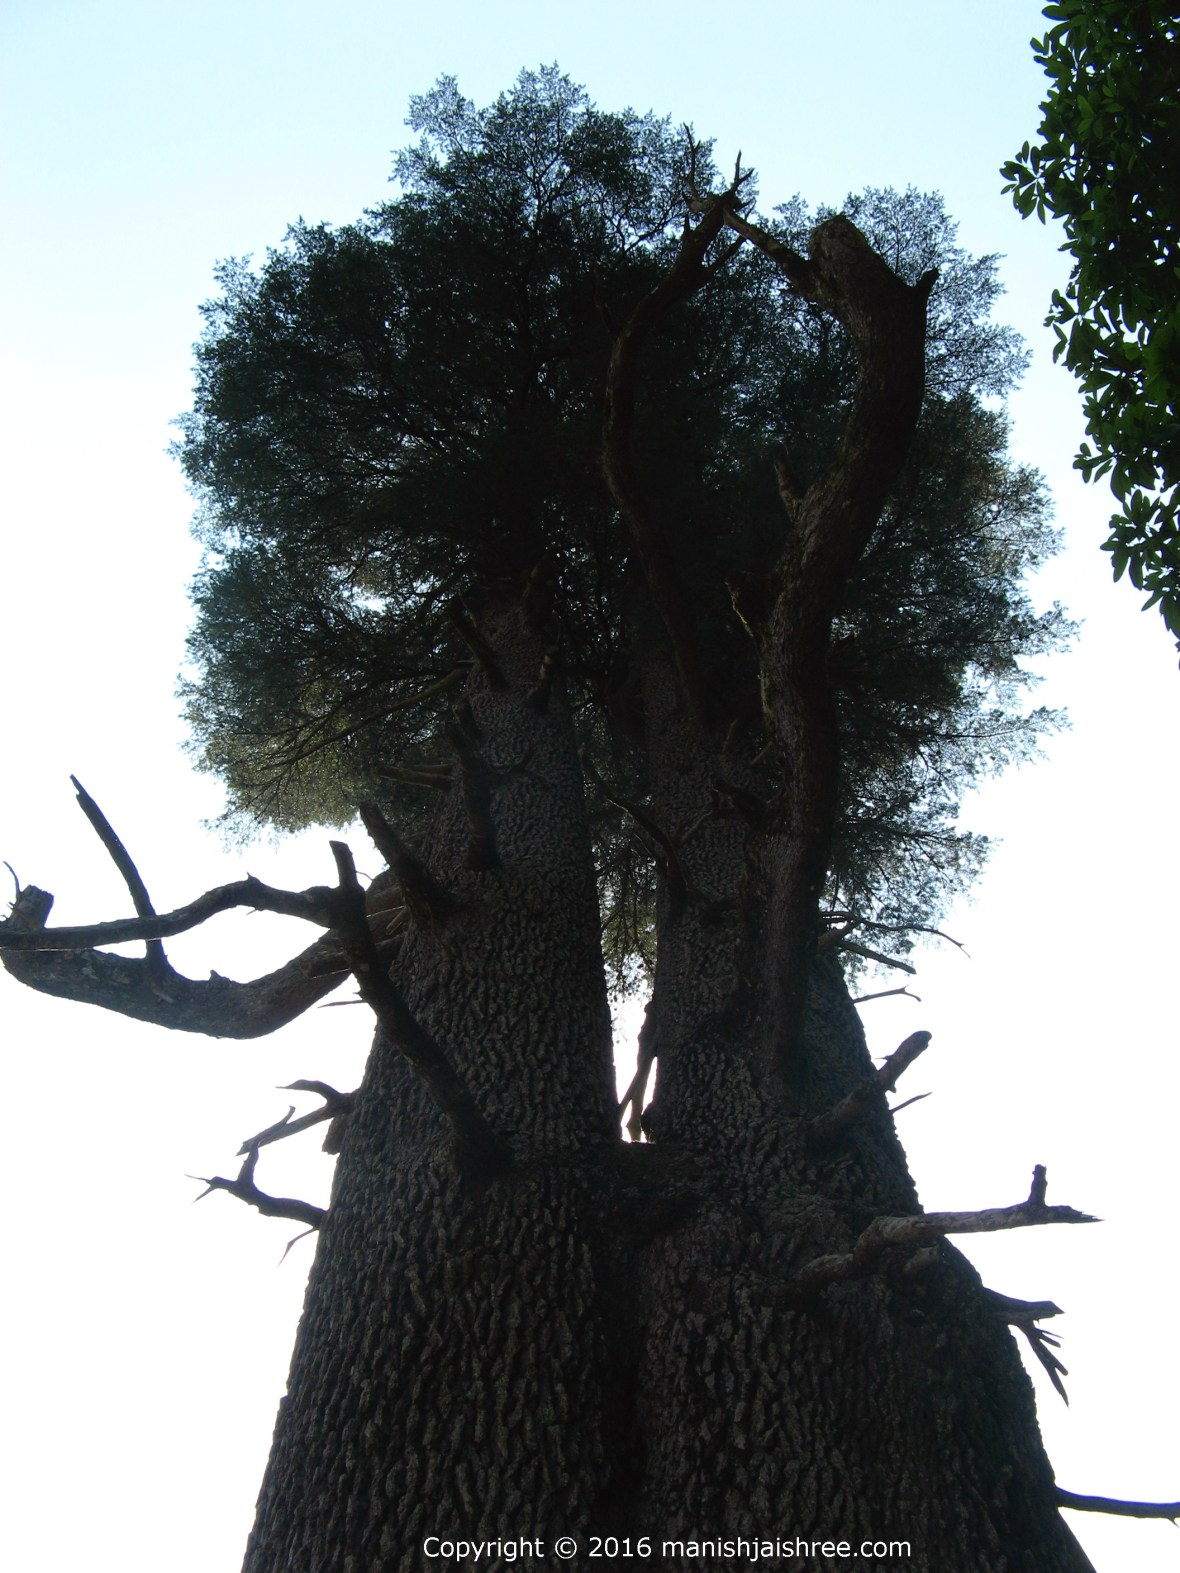 Giant Deodar trees guarding the Jageshwar Temple complex